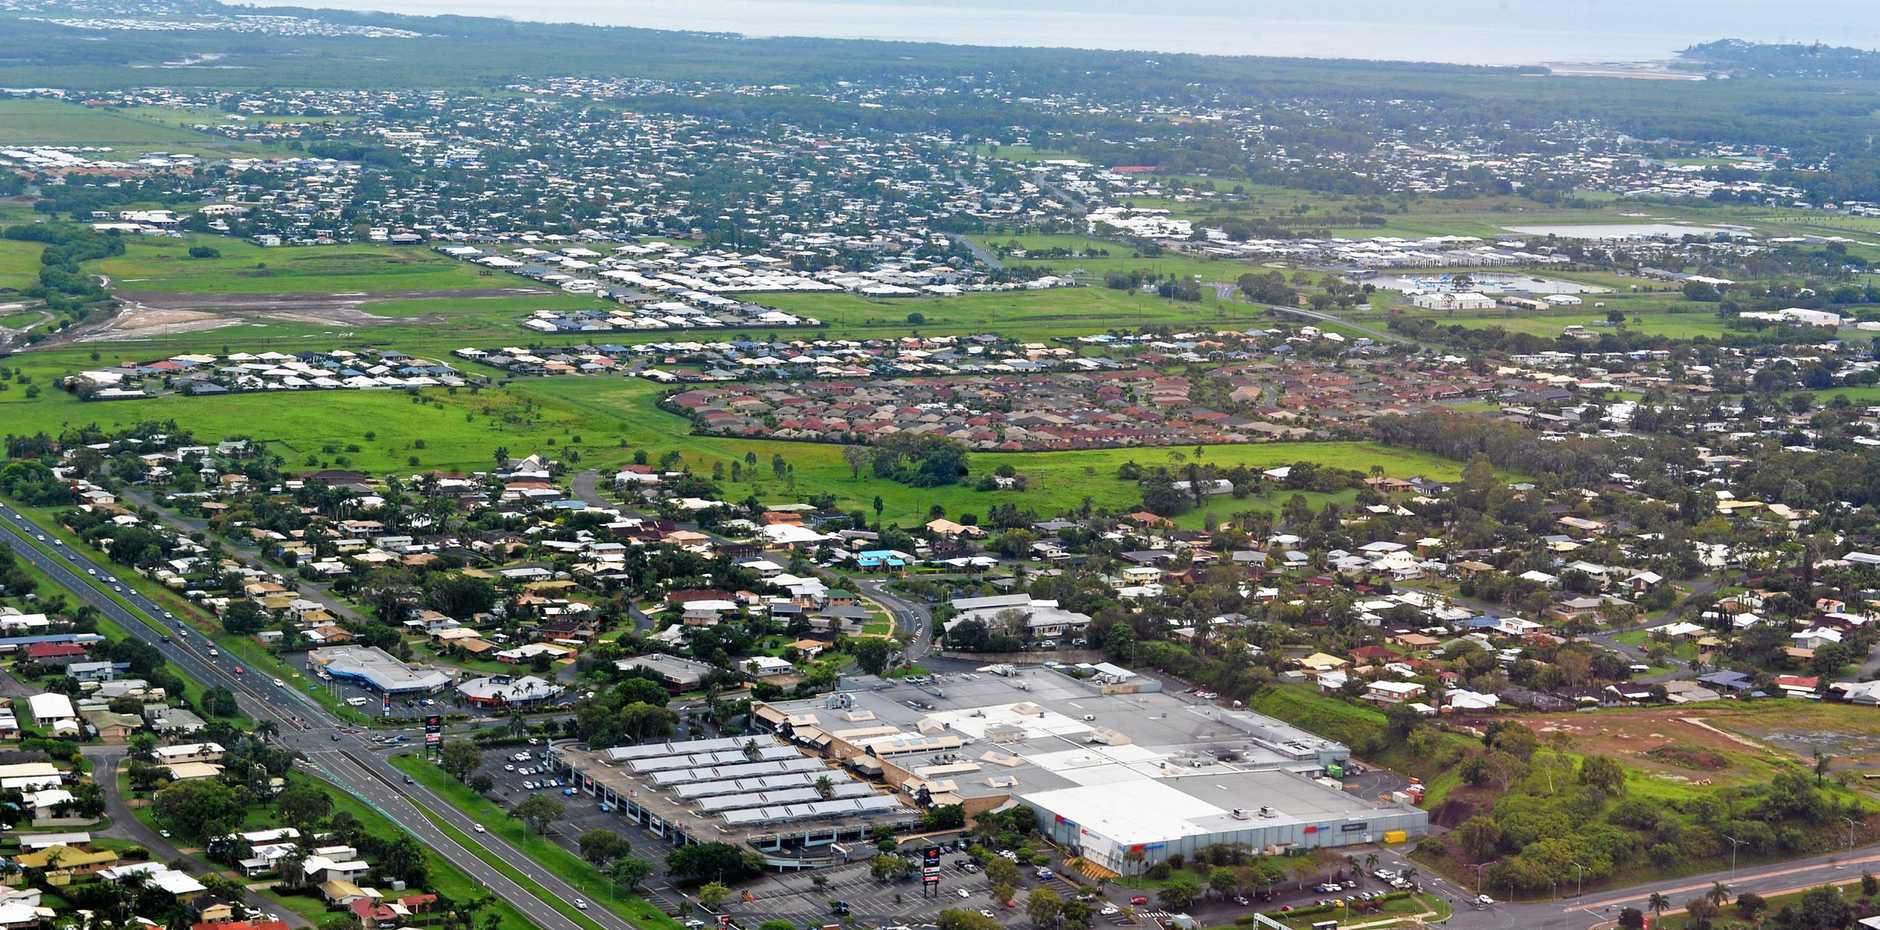 An aerial view of Mackay.